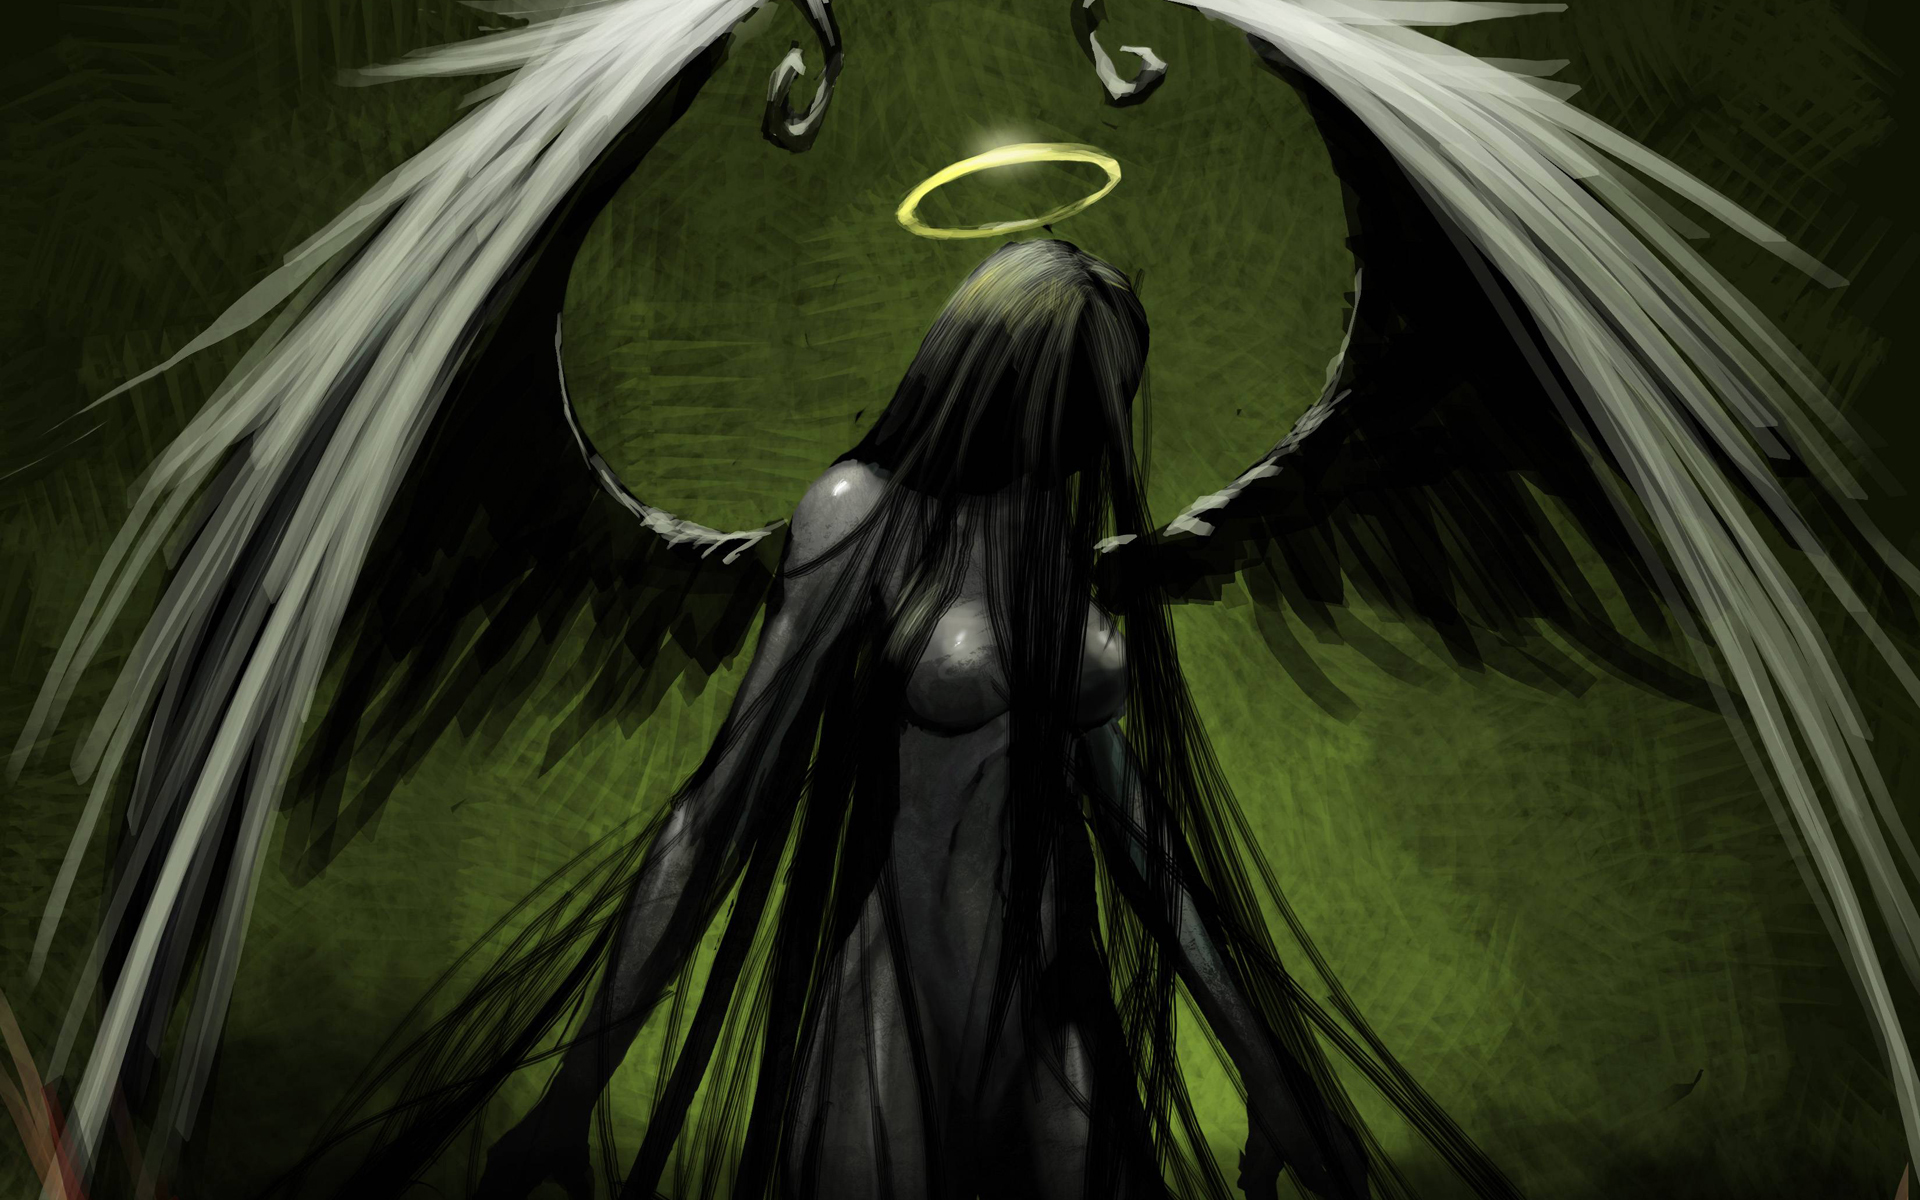 Angel Green Drawing Halo Wings Gothic Dark Wallpaper